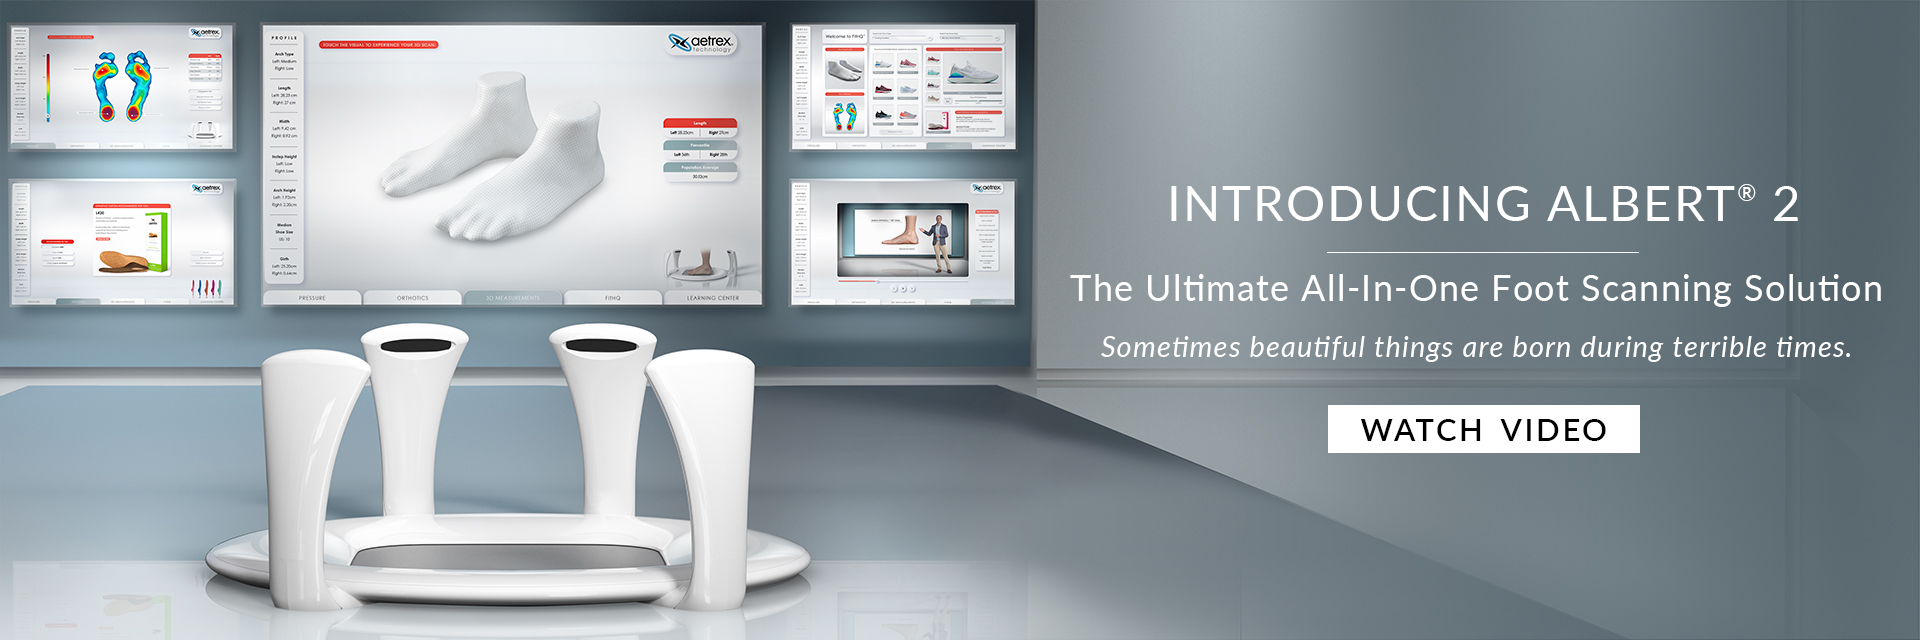 Technology Homepage